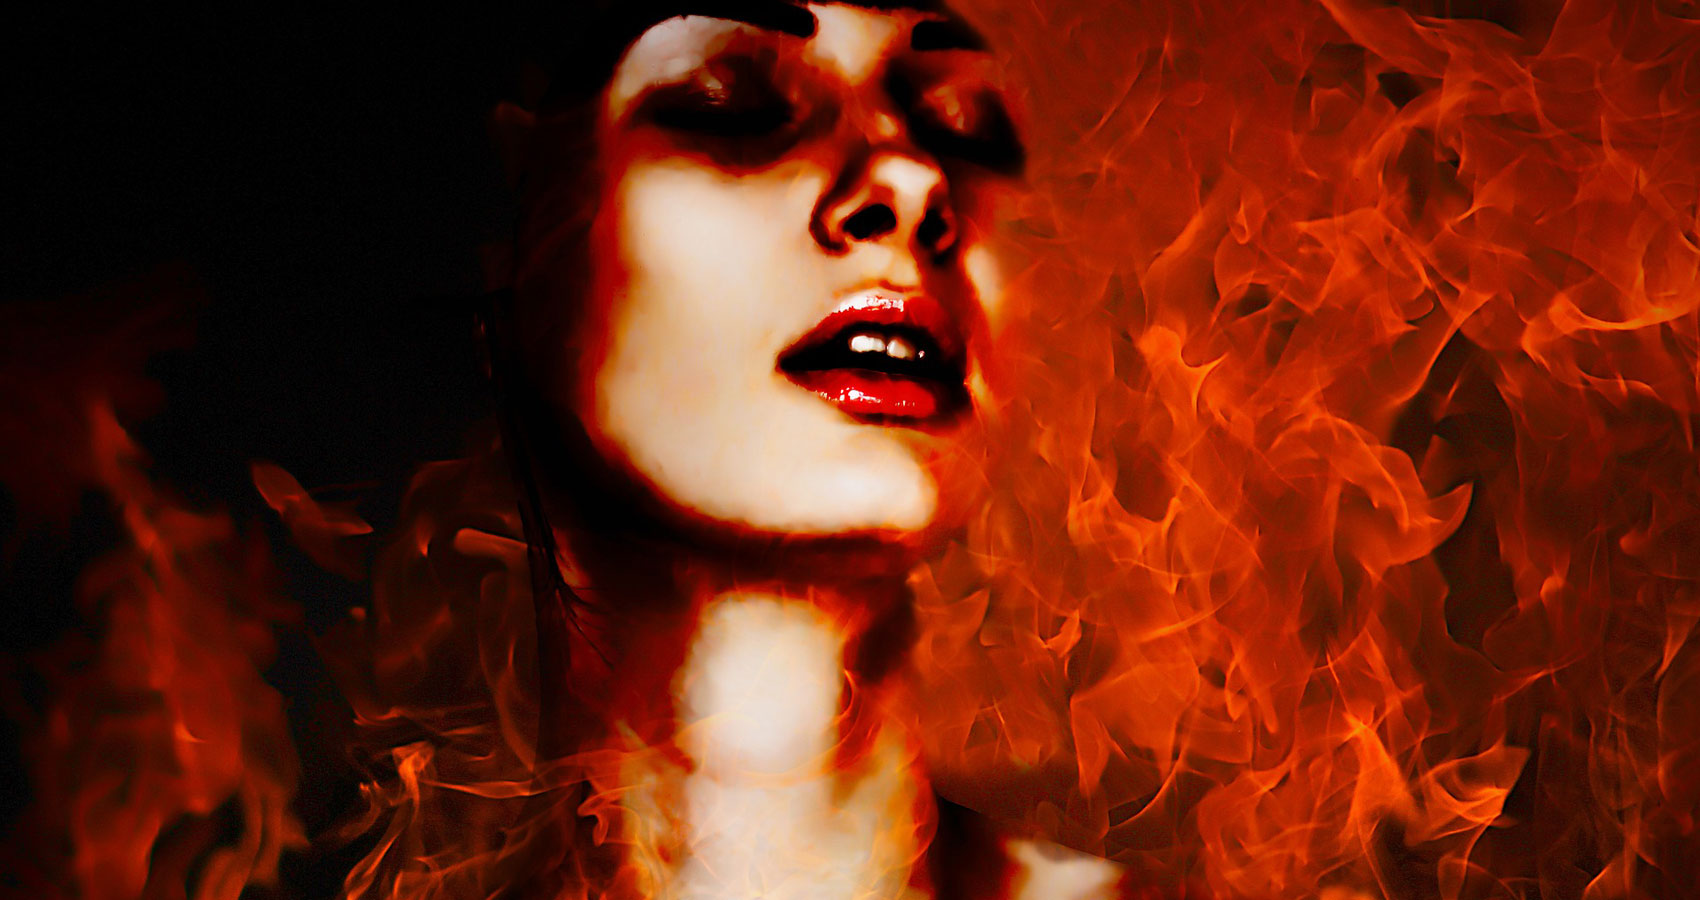 Passionate Ashes, written by Sharil Miller at Spillwords.com